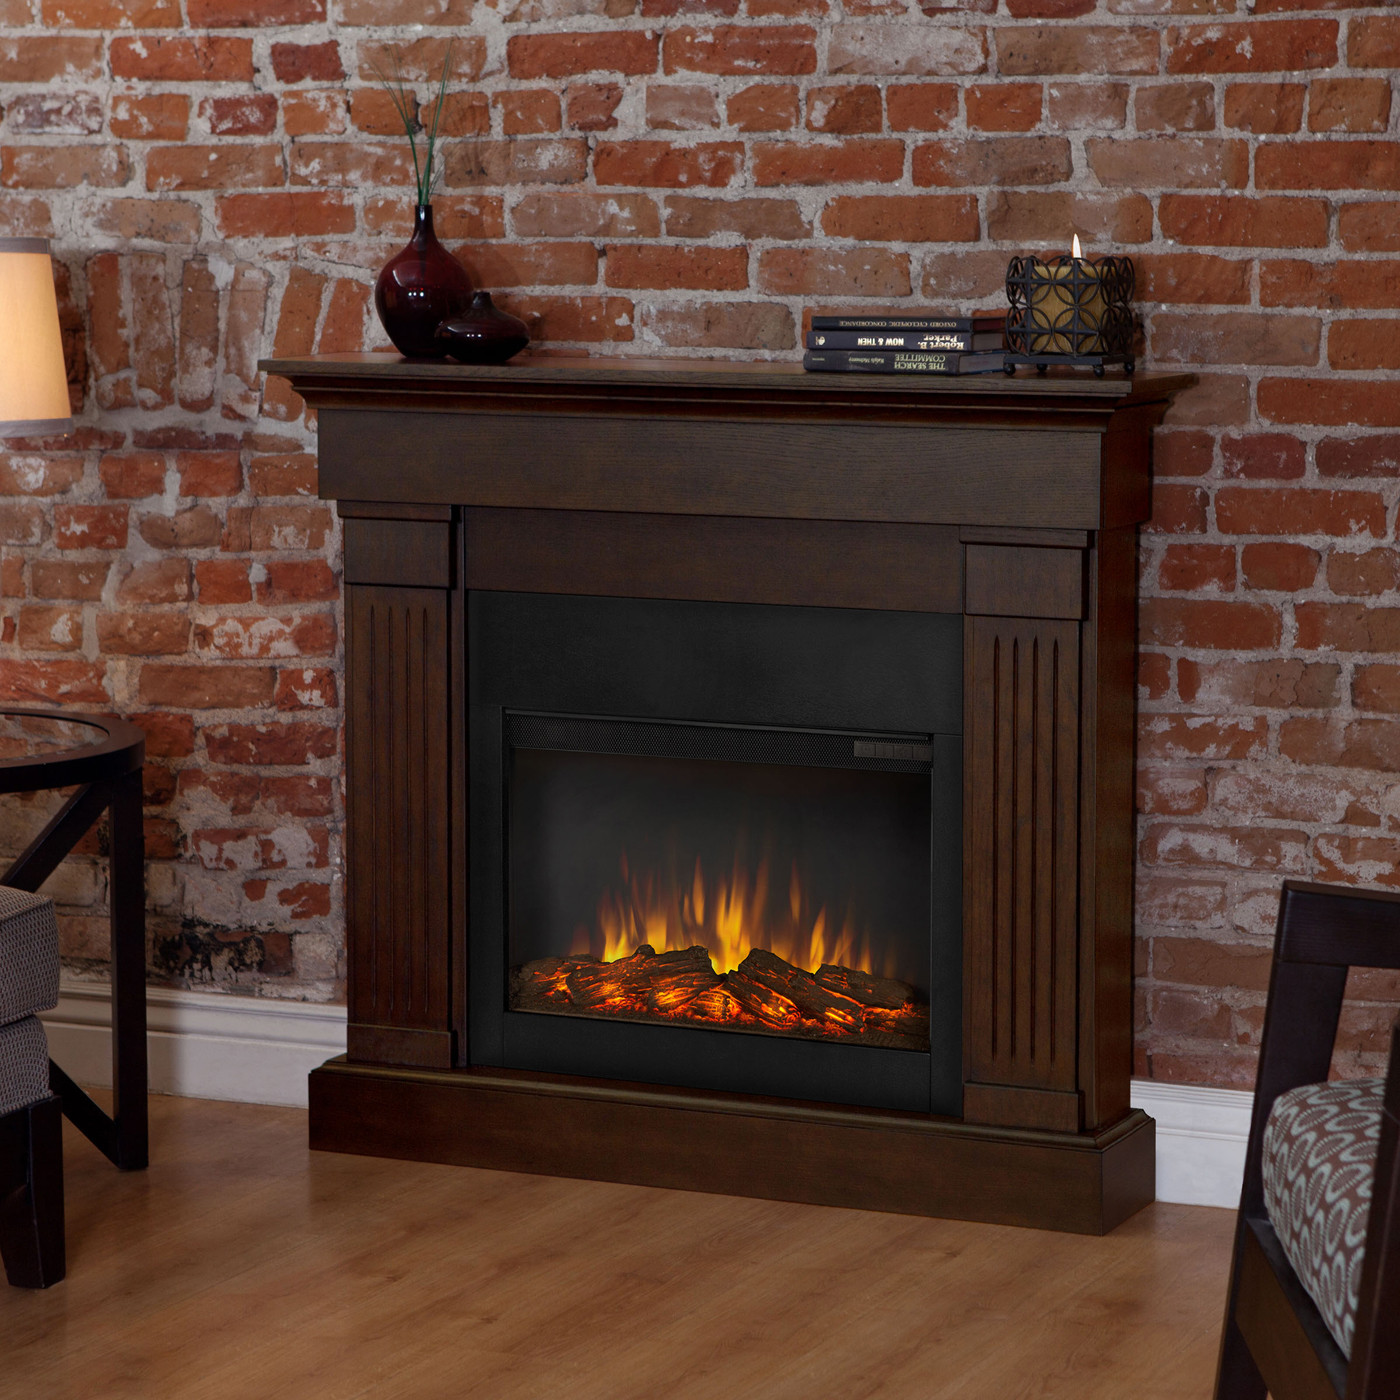 Best ideas about Real Flame Fireplace . Save or Pin Real Flame 8020E Crawford Indoor Electric Fireplace Now.